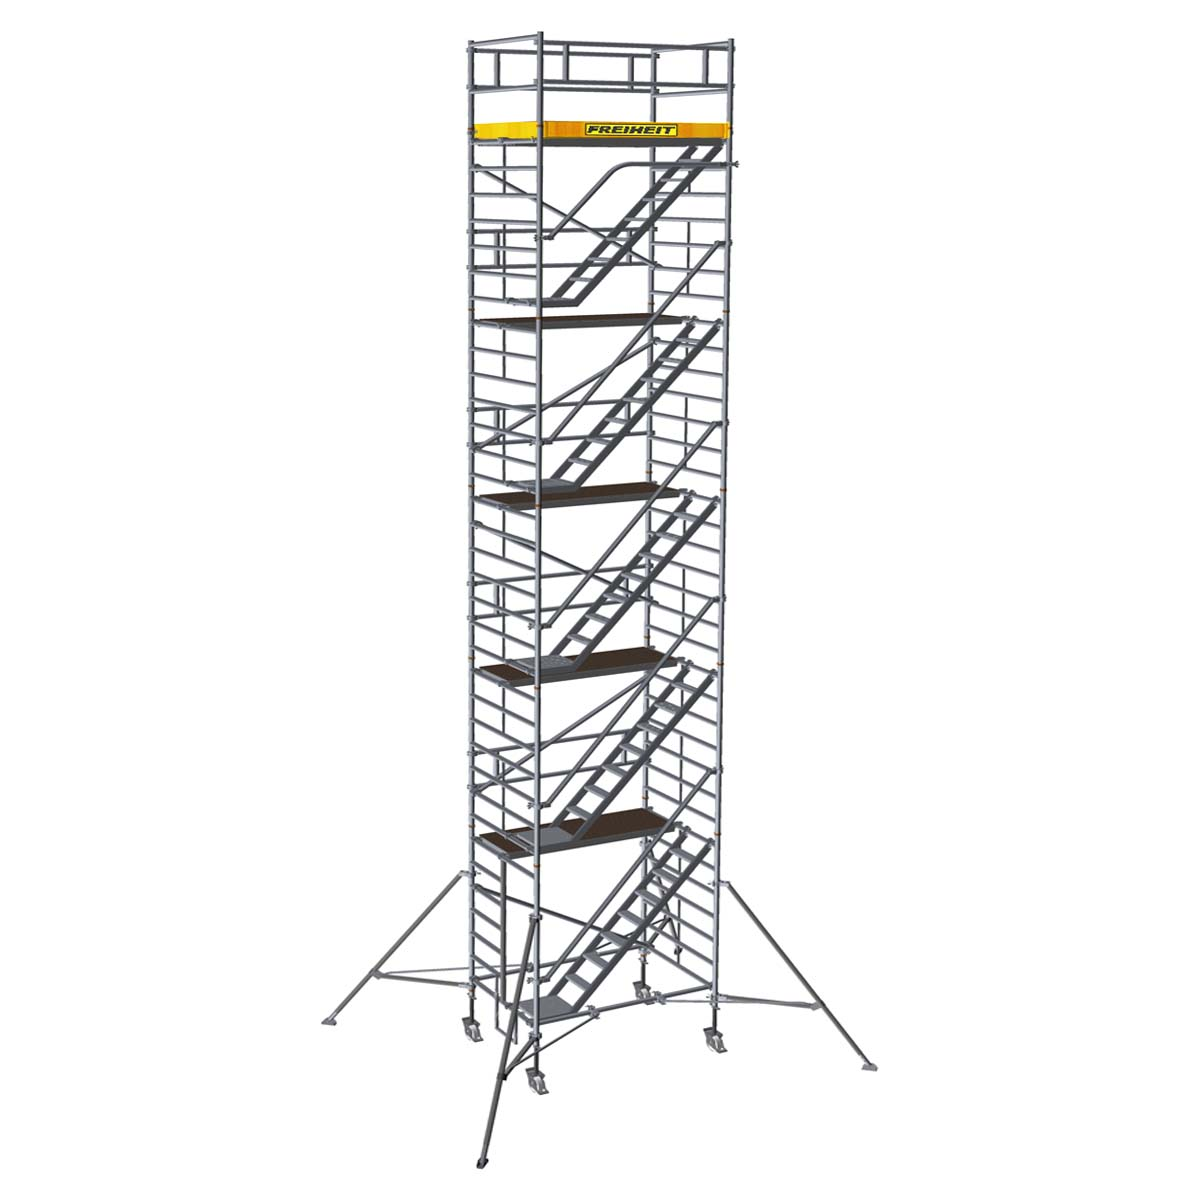 Aluminium Mobile Scaffold Towers Mobile Scaffold Tower